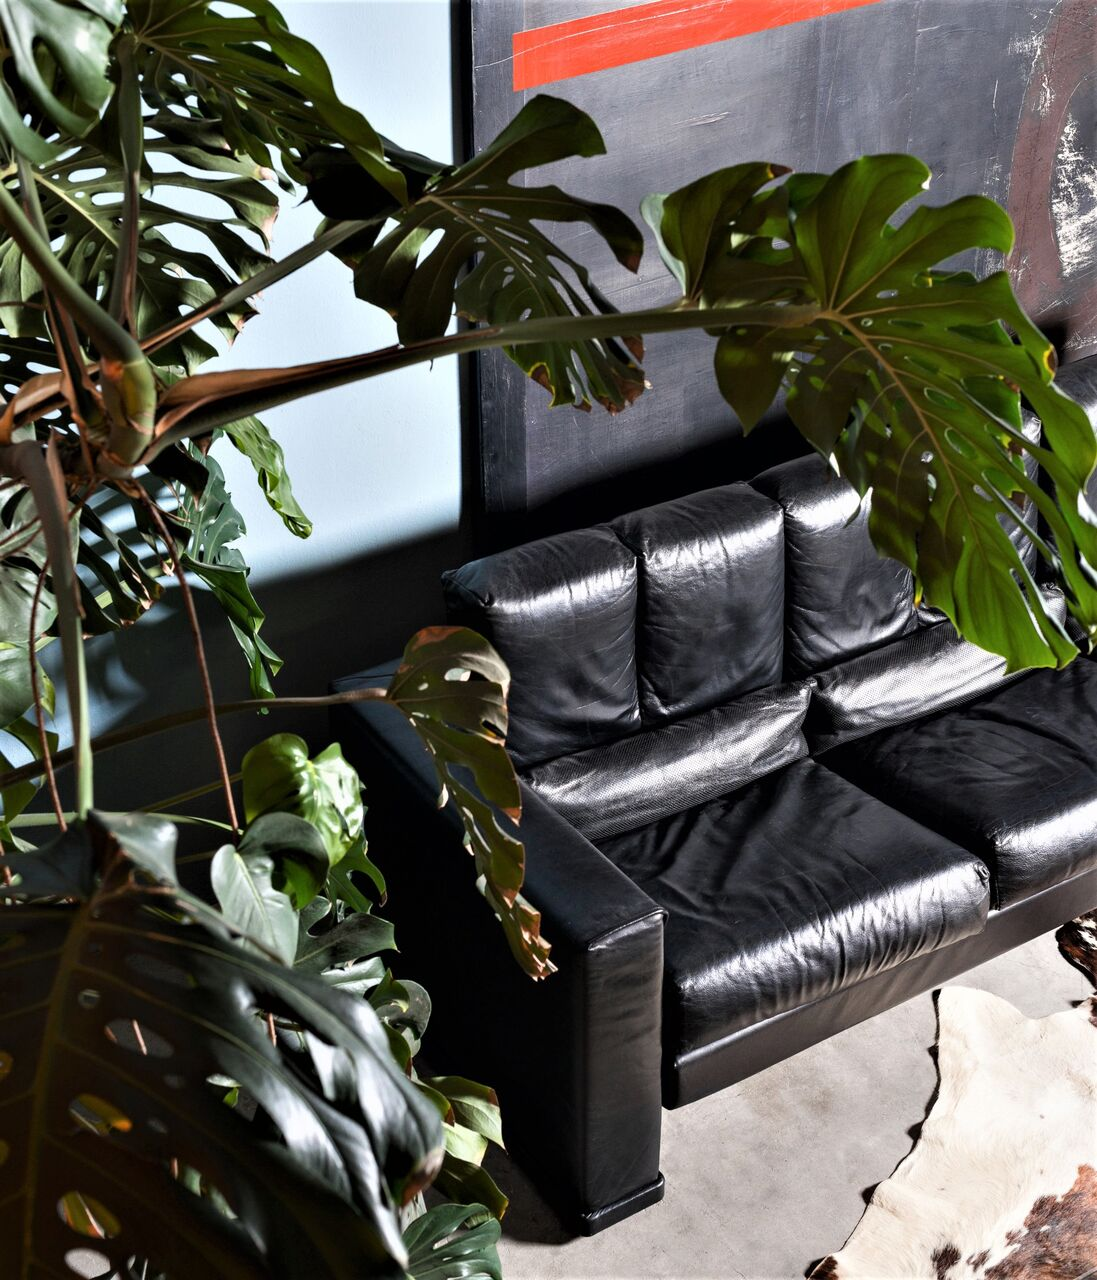 Excelsior Sofa by Mario Bellini for BandB Italy 1985